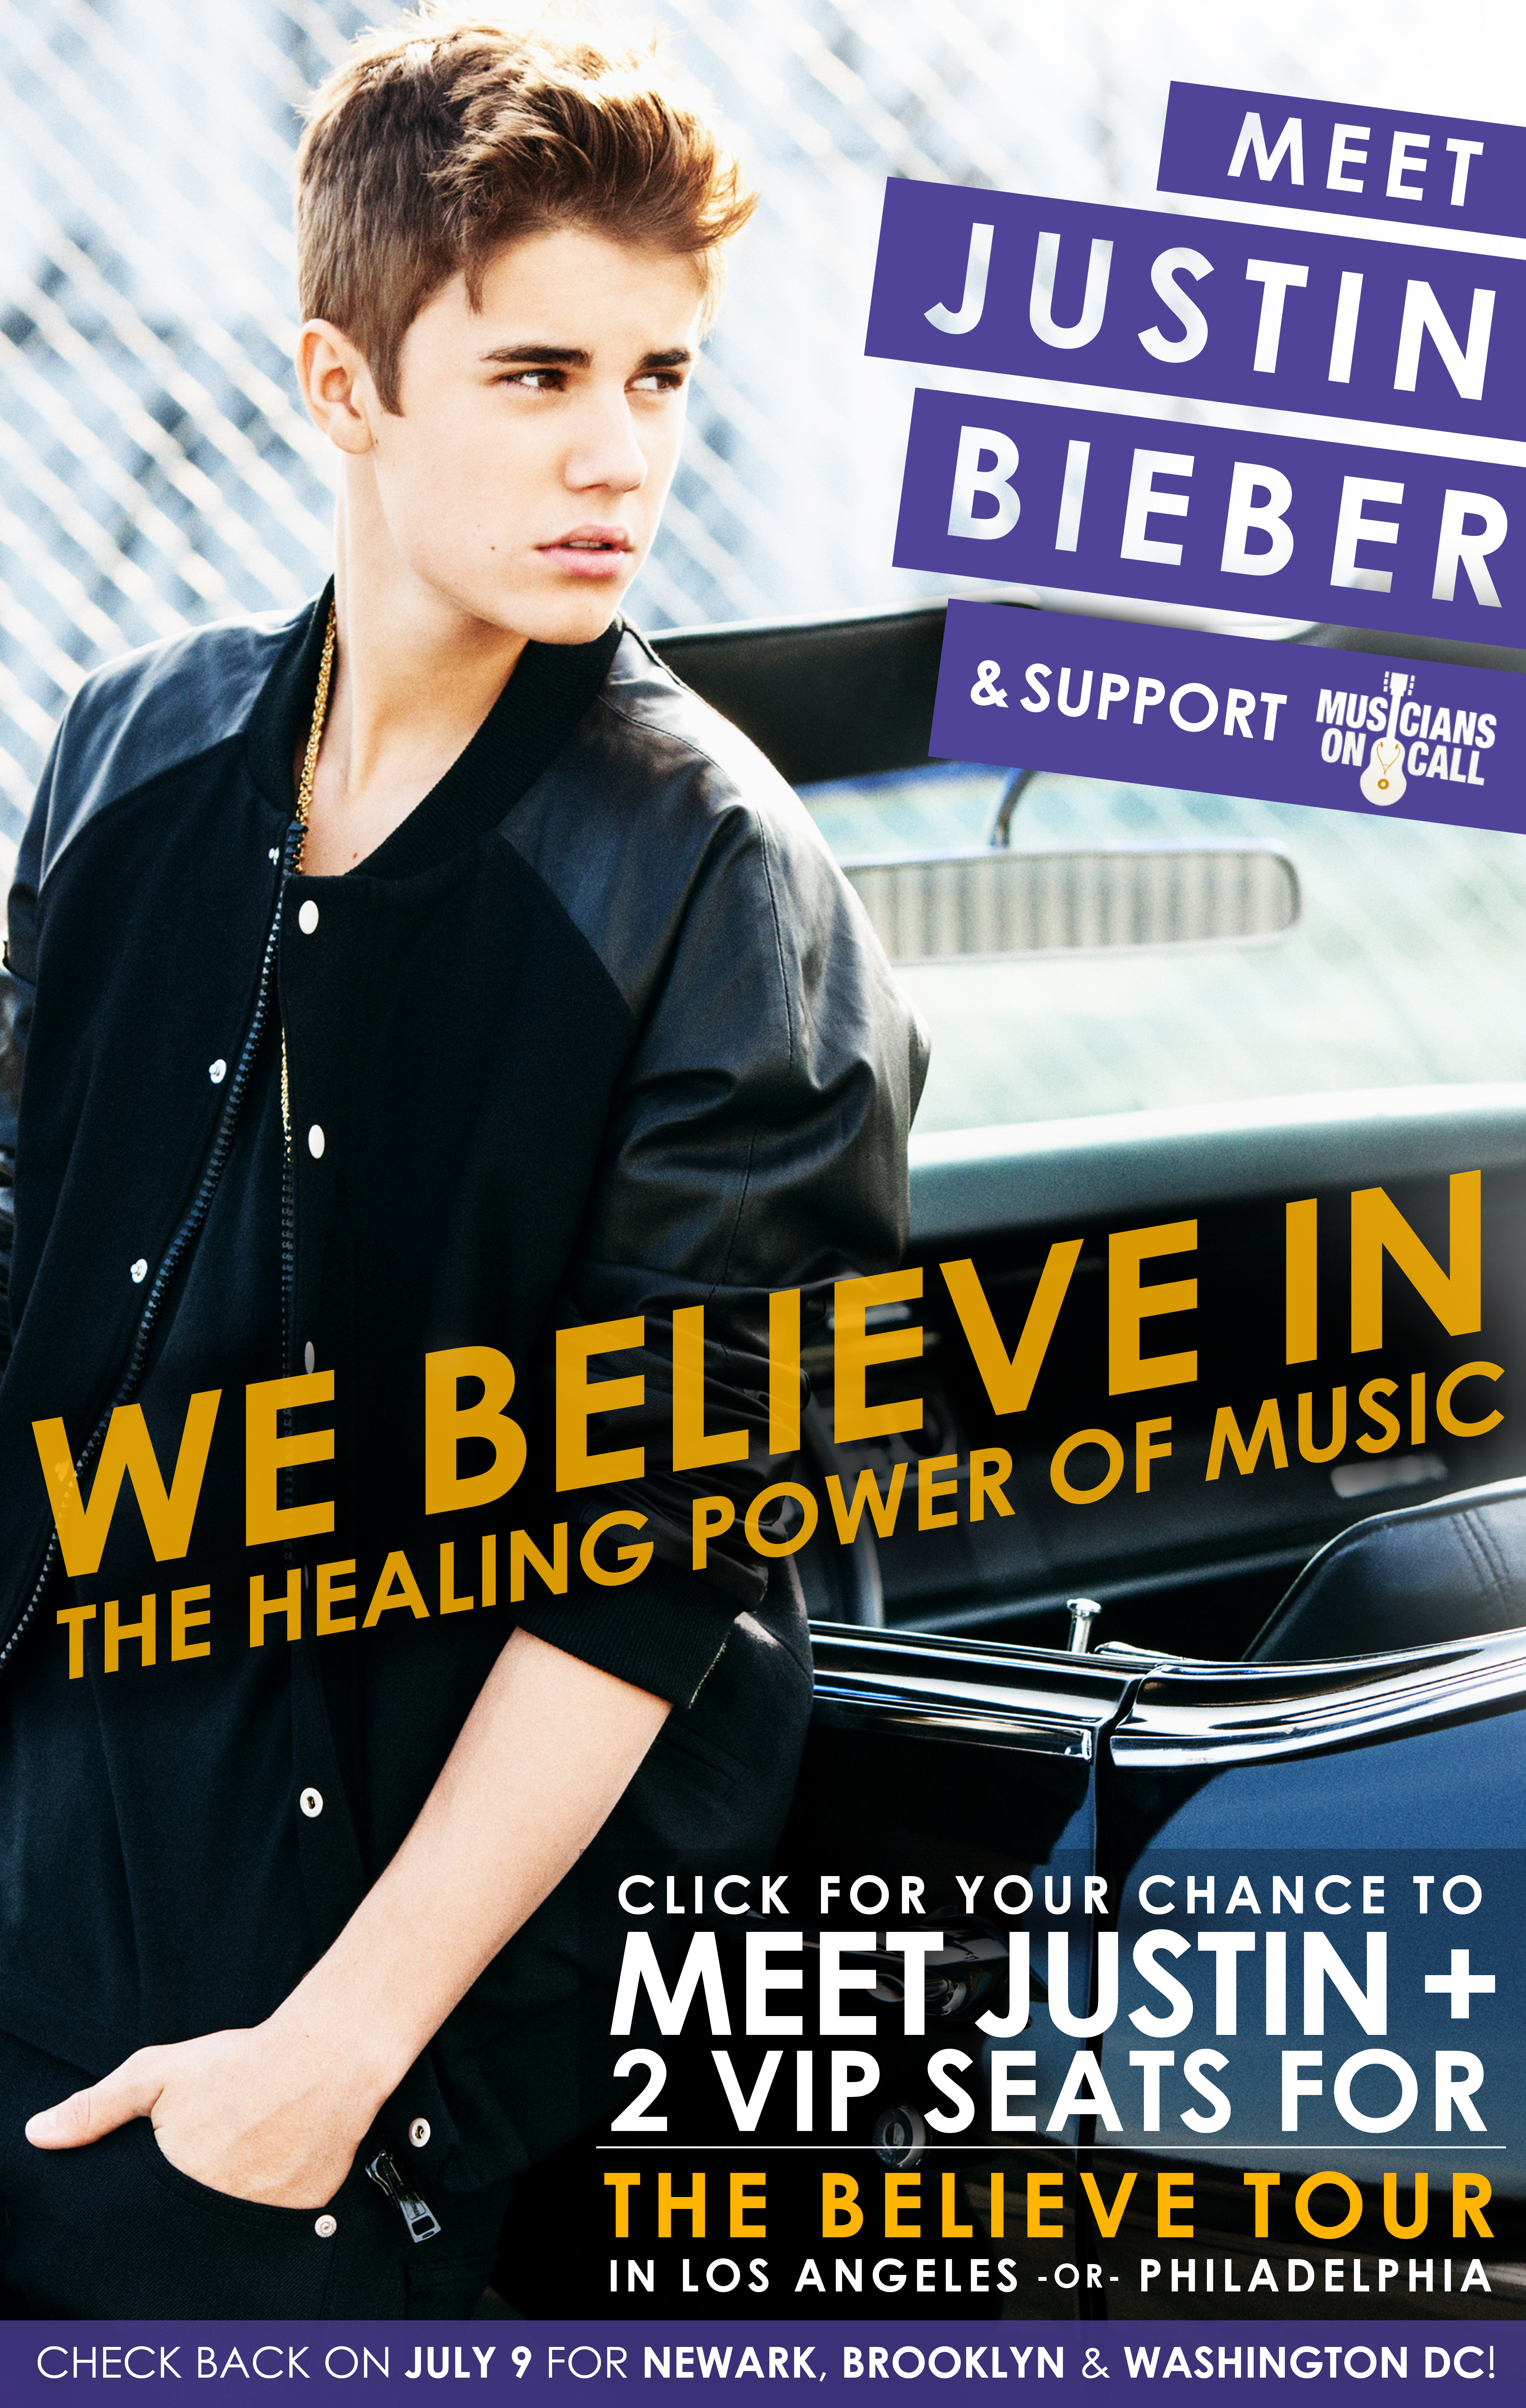 Charitybuzz Meet Justin Bieber Plus 2 Great Seats For His June 24